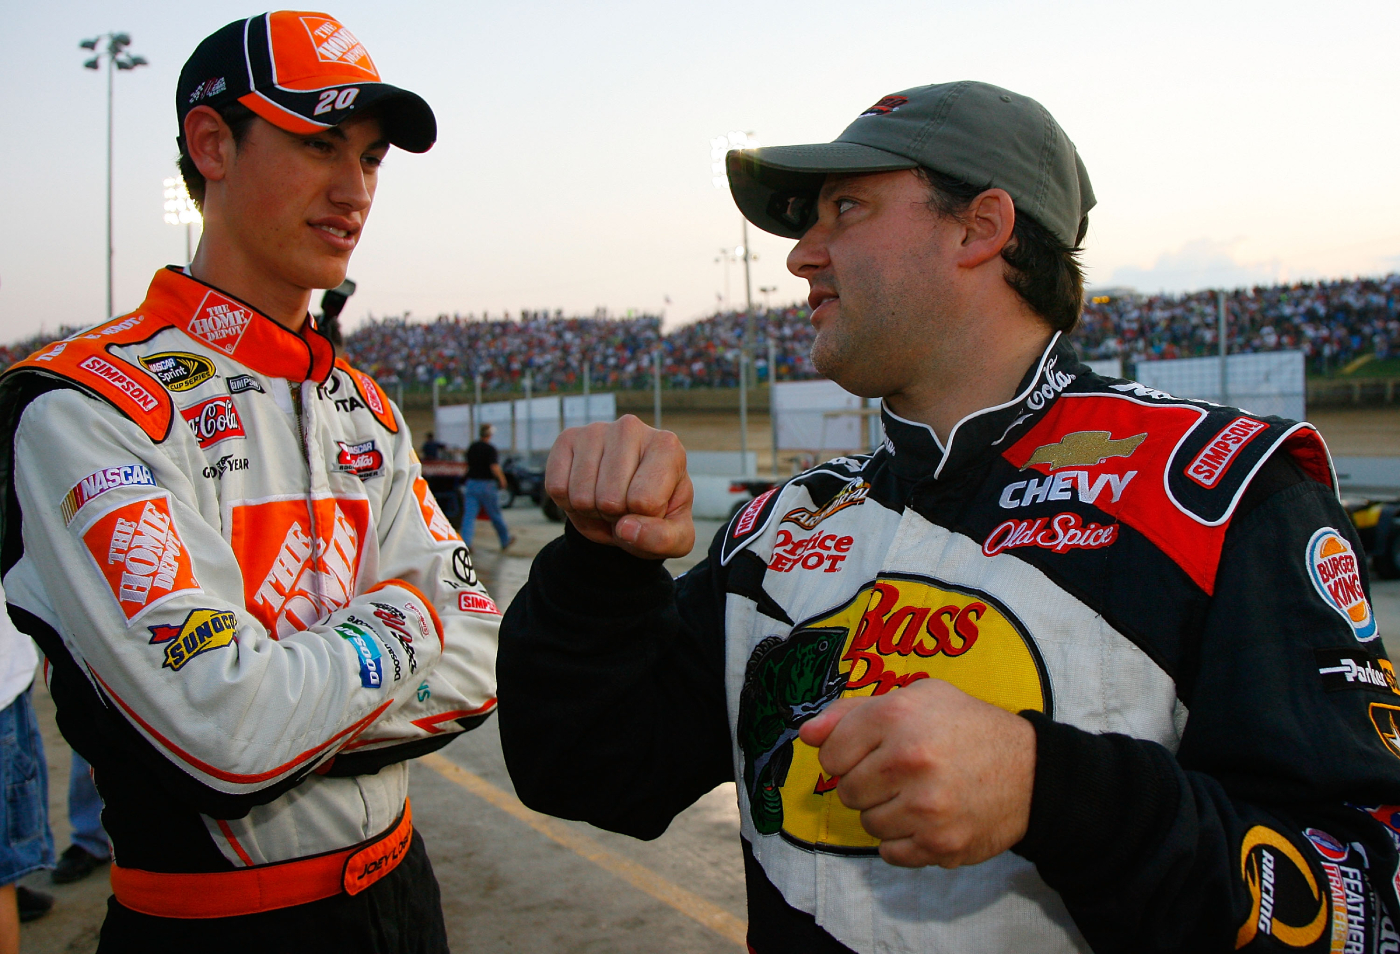 Tony Stewart is a NASCAR legend. However, Joey Logano wasn't too afraid of his legendary status, which led to a stern response from Stewart.